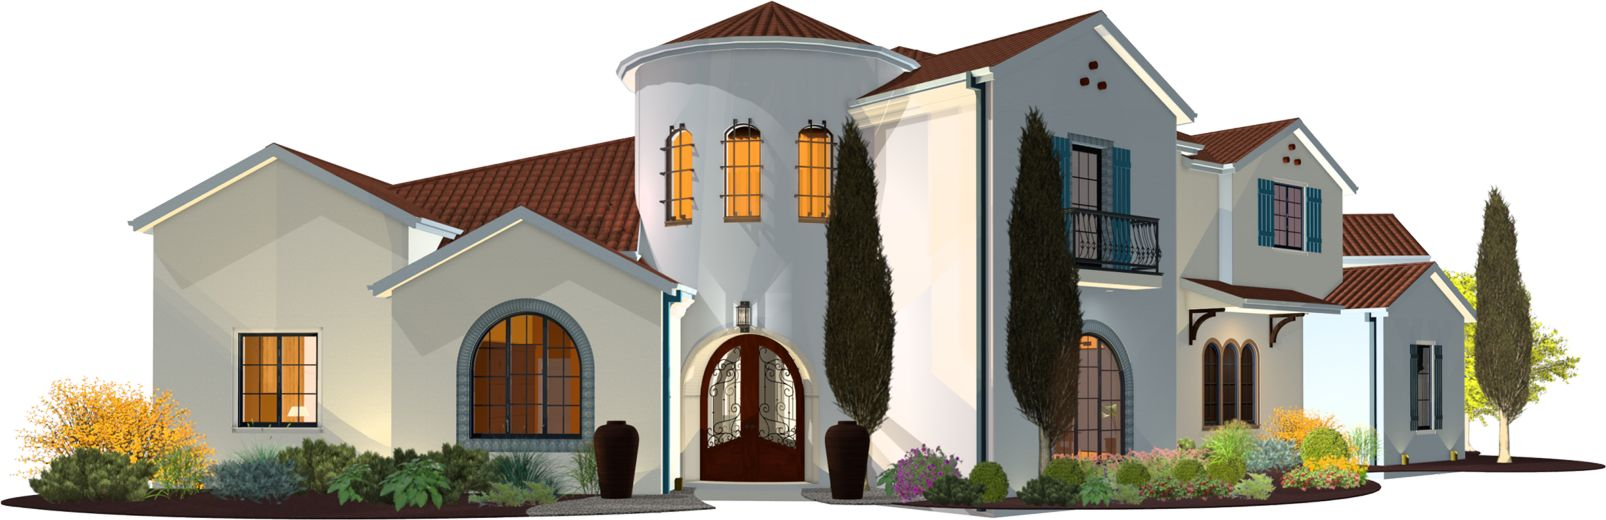 An exterior render of a Mediterranean style home.